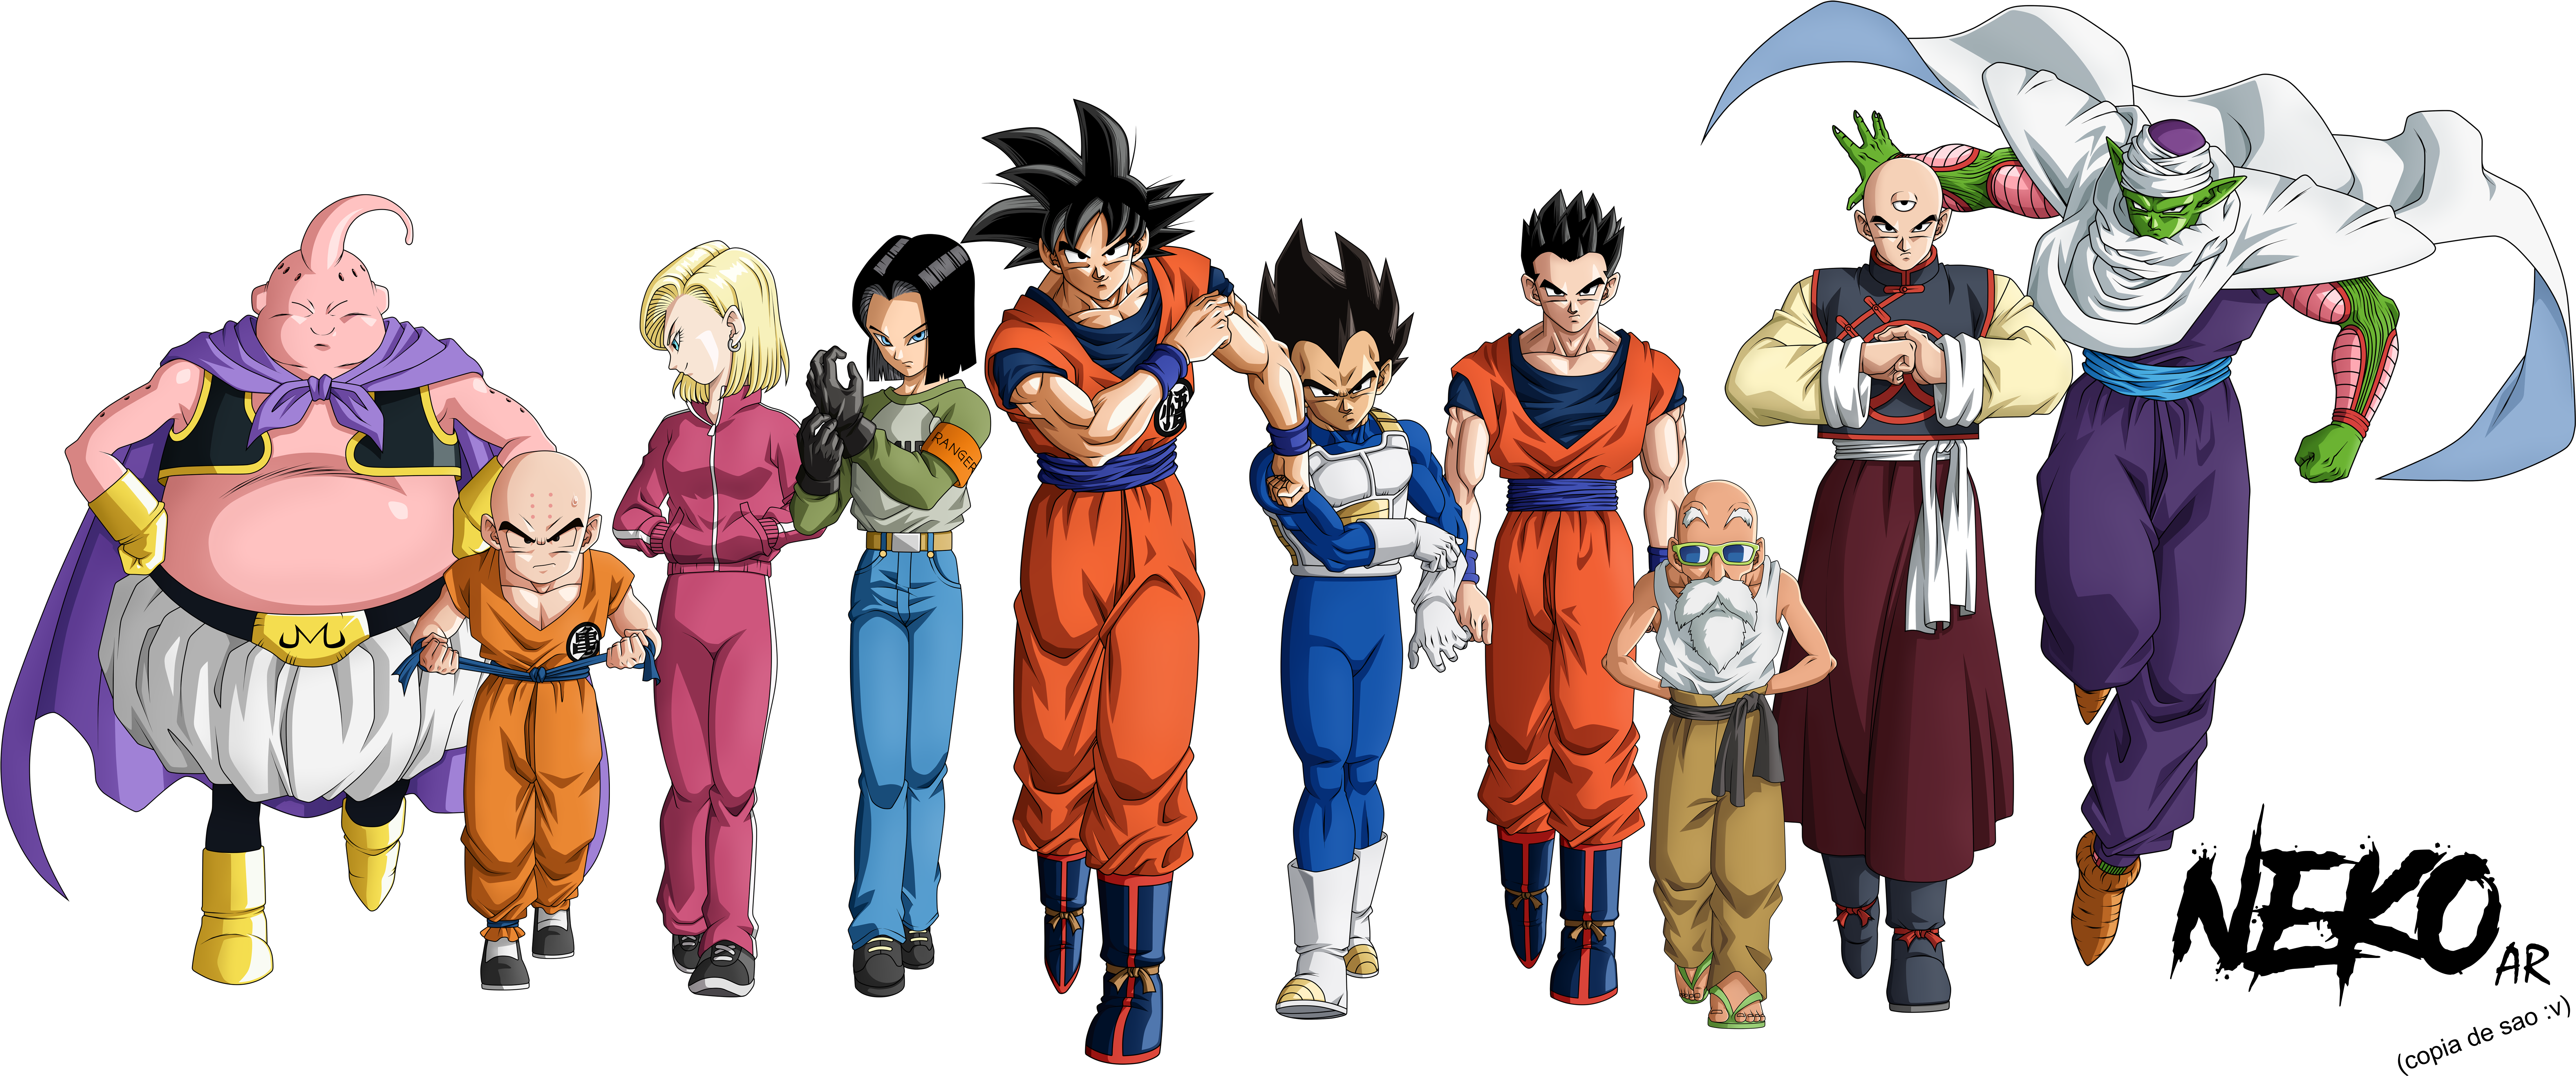 Download Wallpapers Id Dragon Ball Super Png Full Size Png